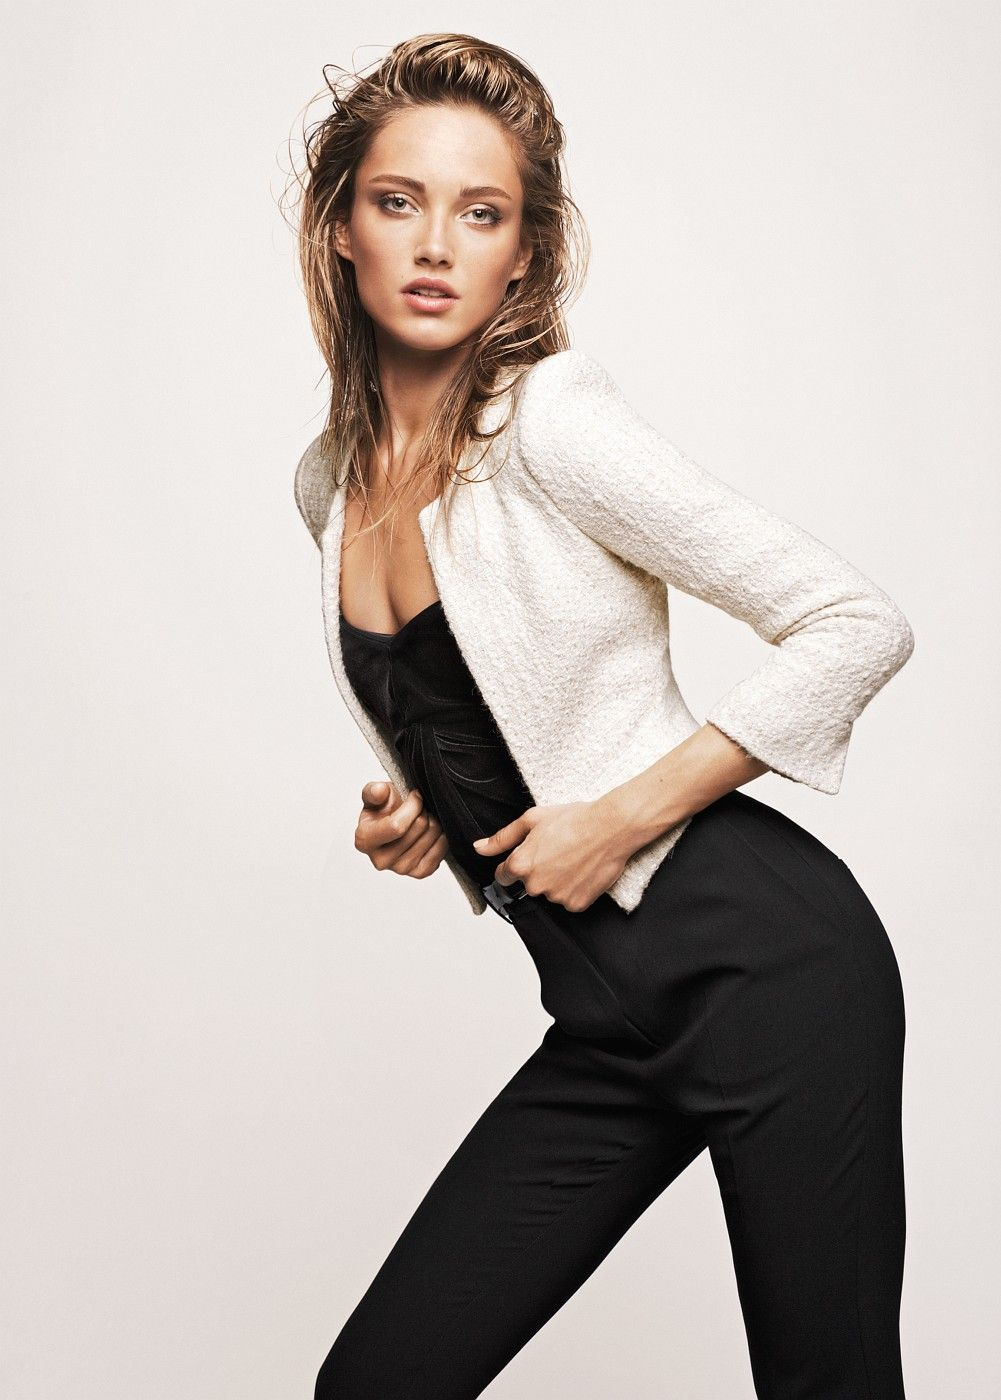 MangoWinter2012Lookbook_007